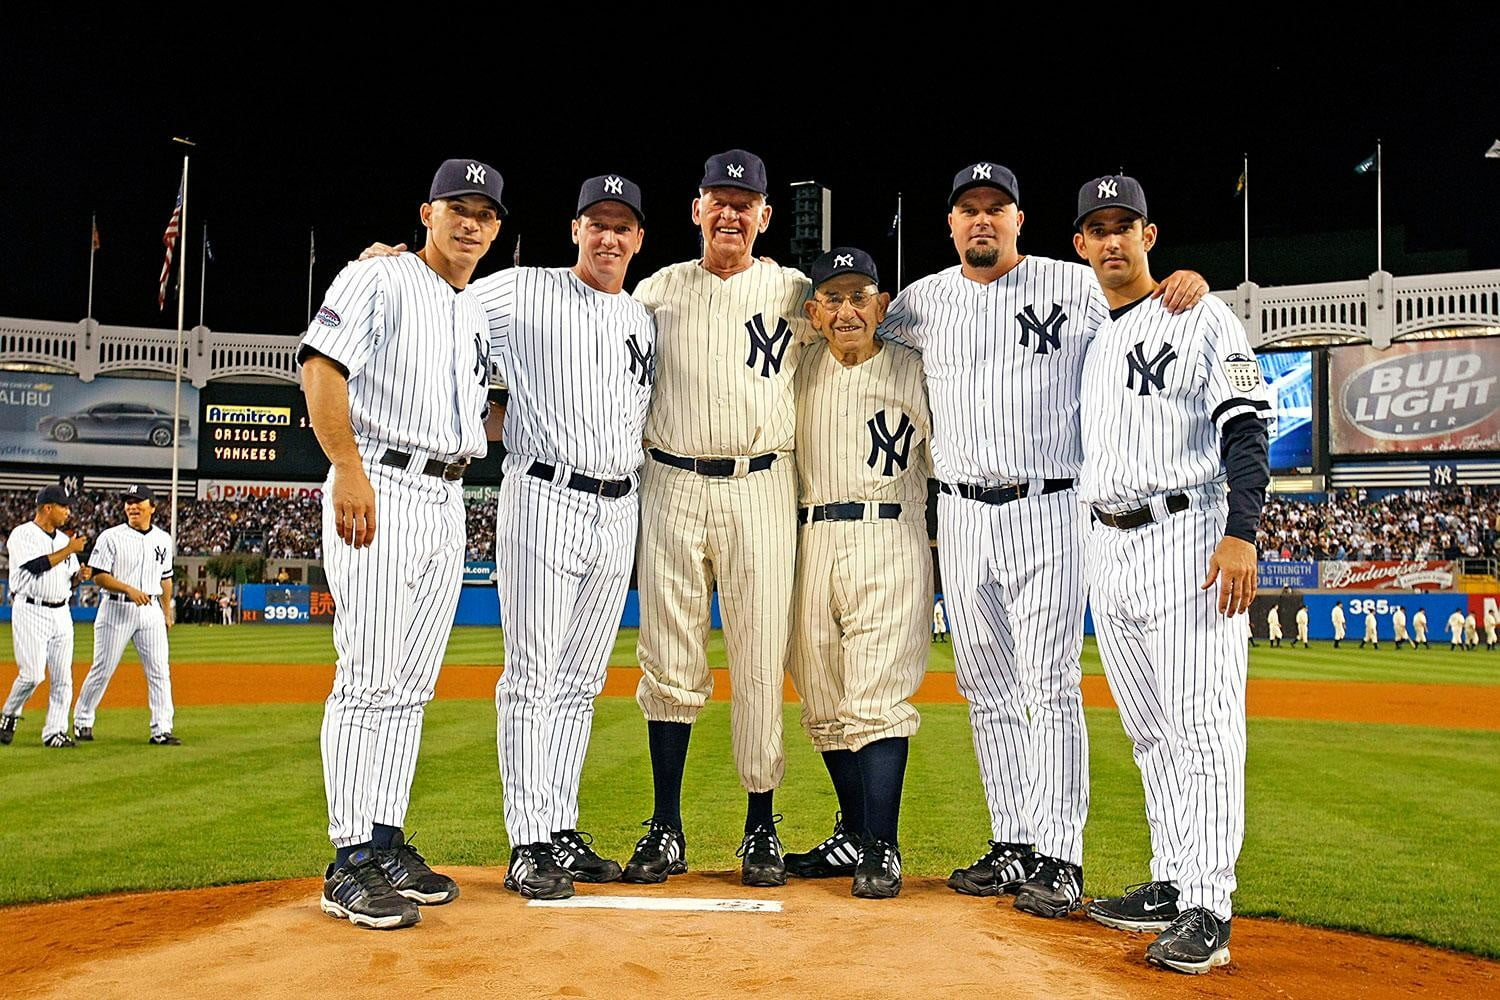 Yankees photographer Ariele Goldman Hecht Perfect Game